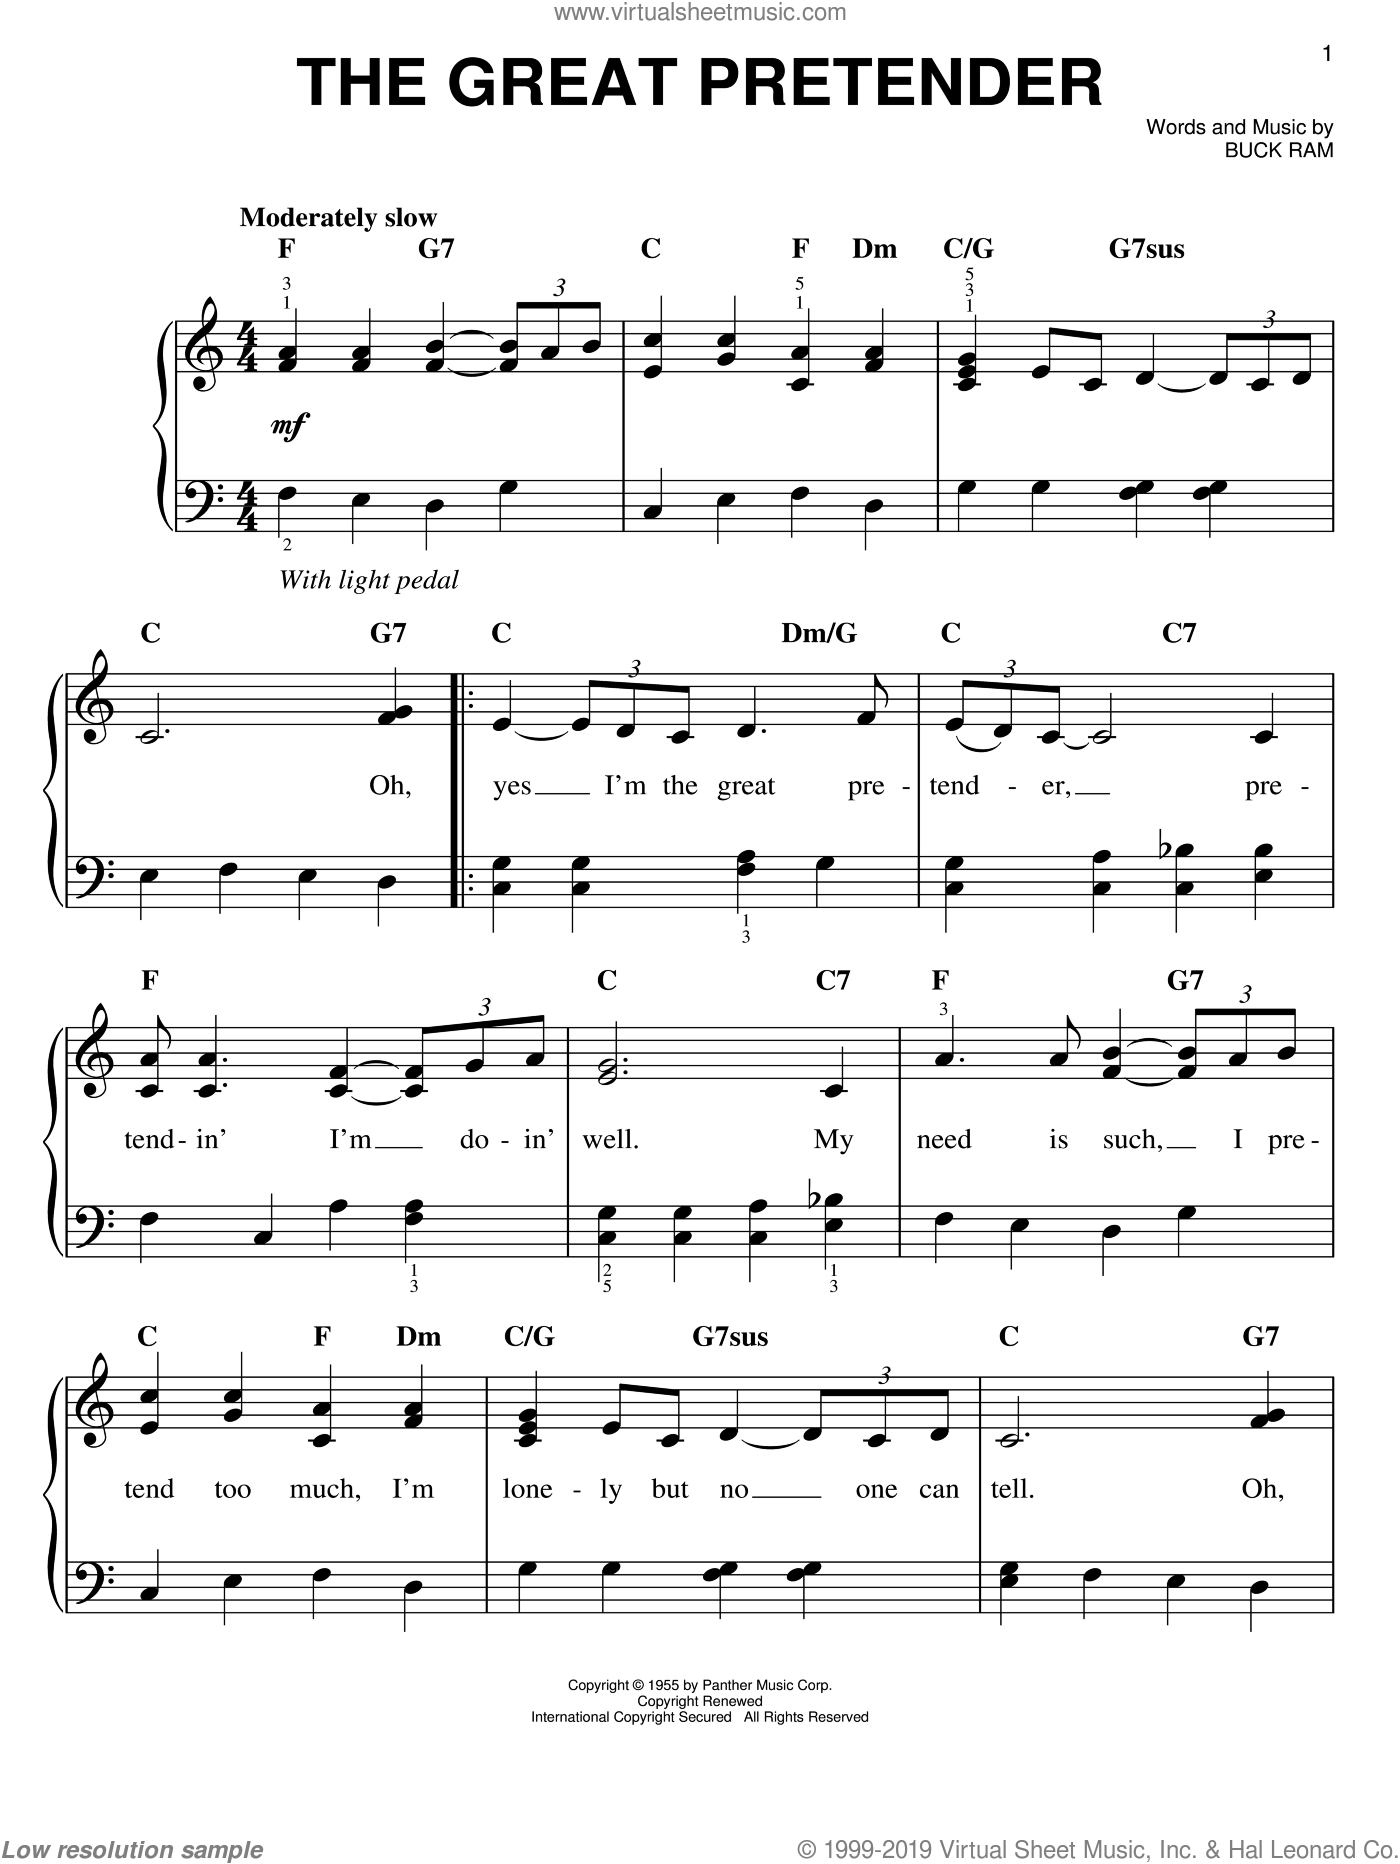 The Great Pretender sheet music for piano solo by The Platters and Buck Ram, easy skill level